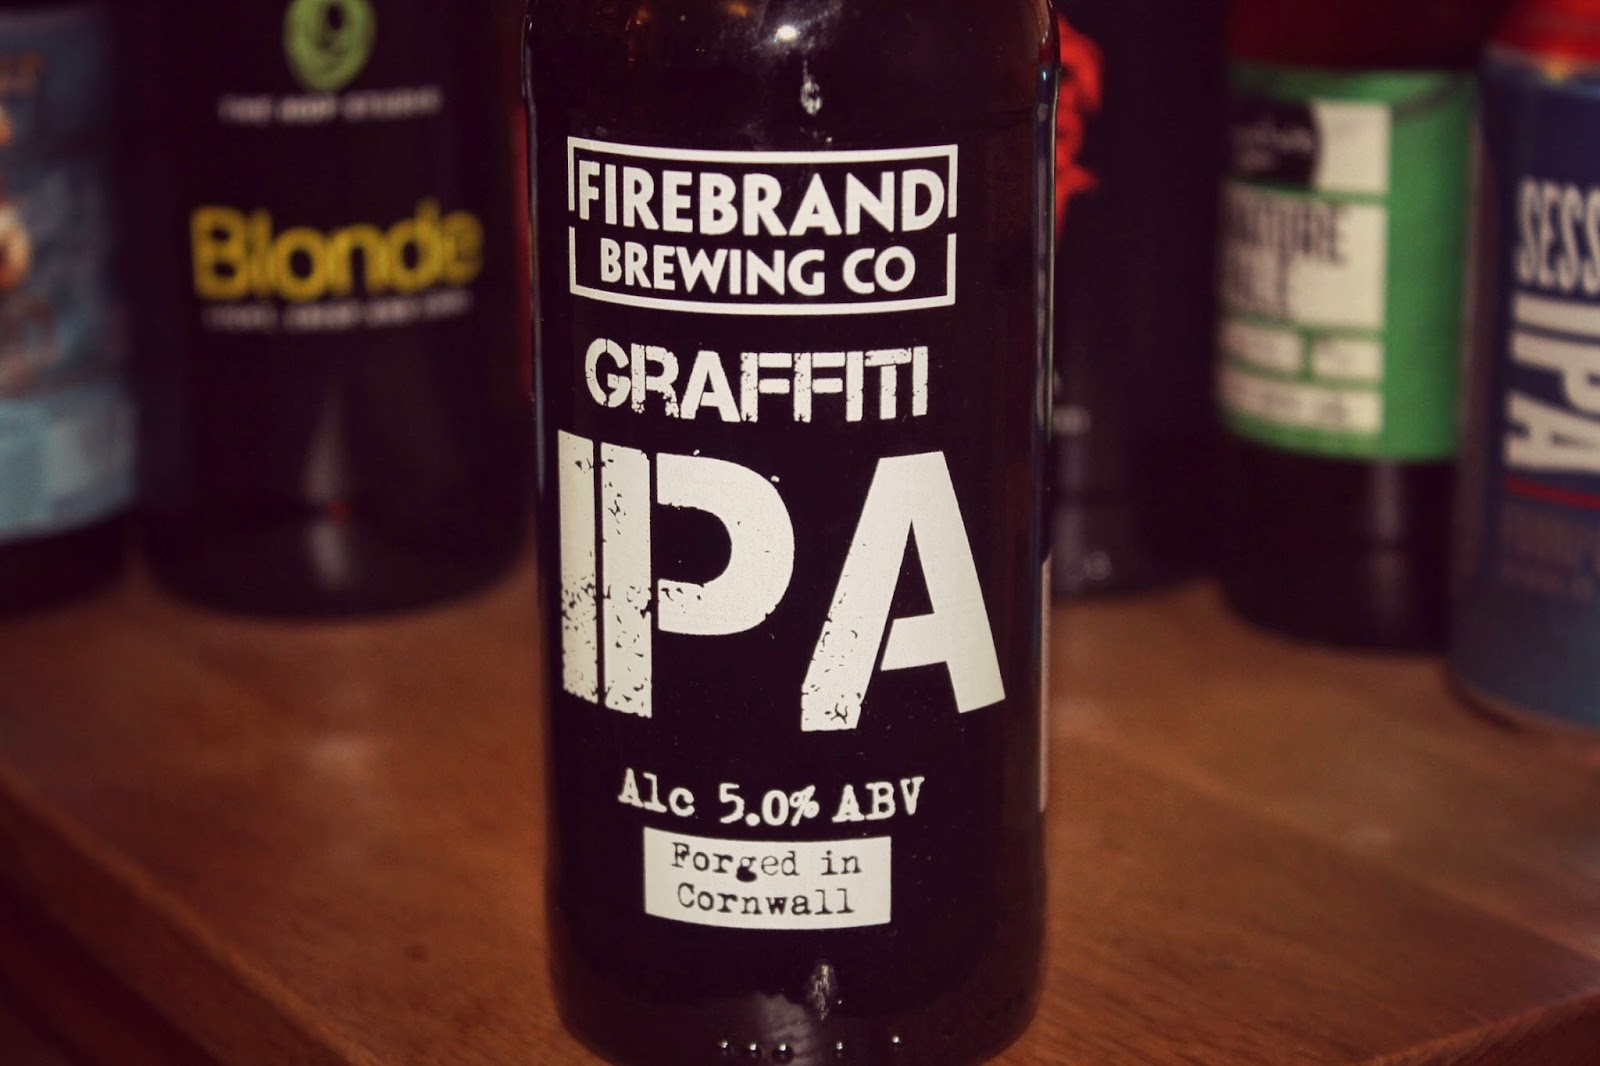 Firebrand Graffiti IPA Beer 52